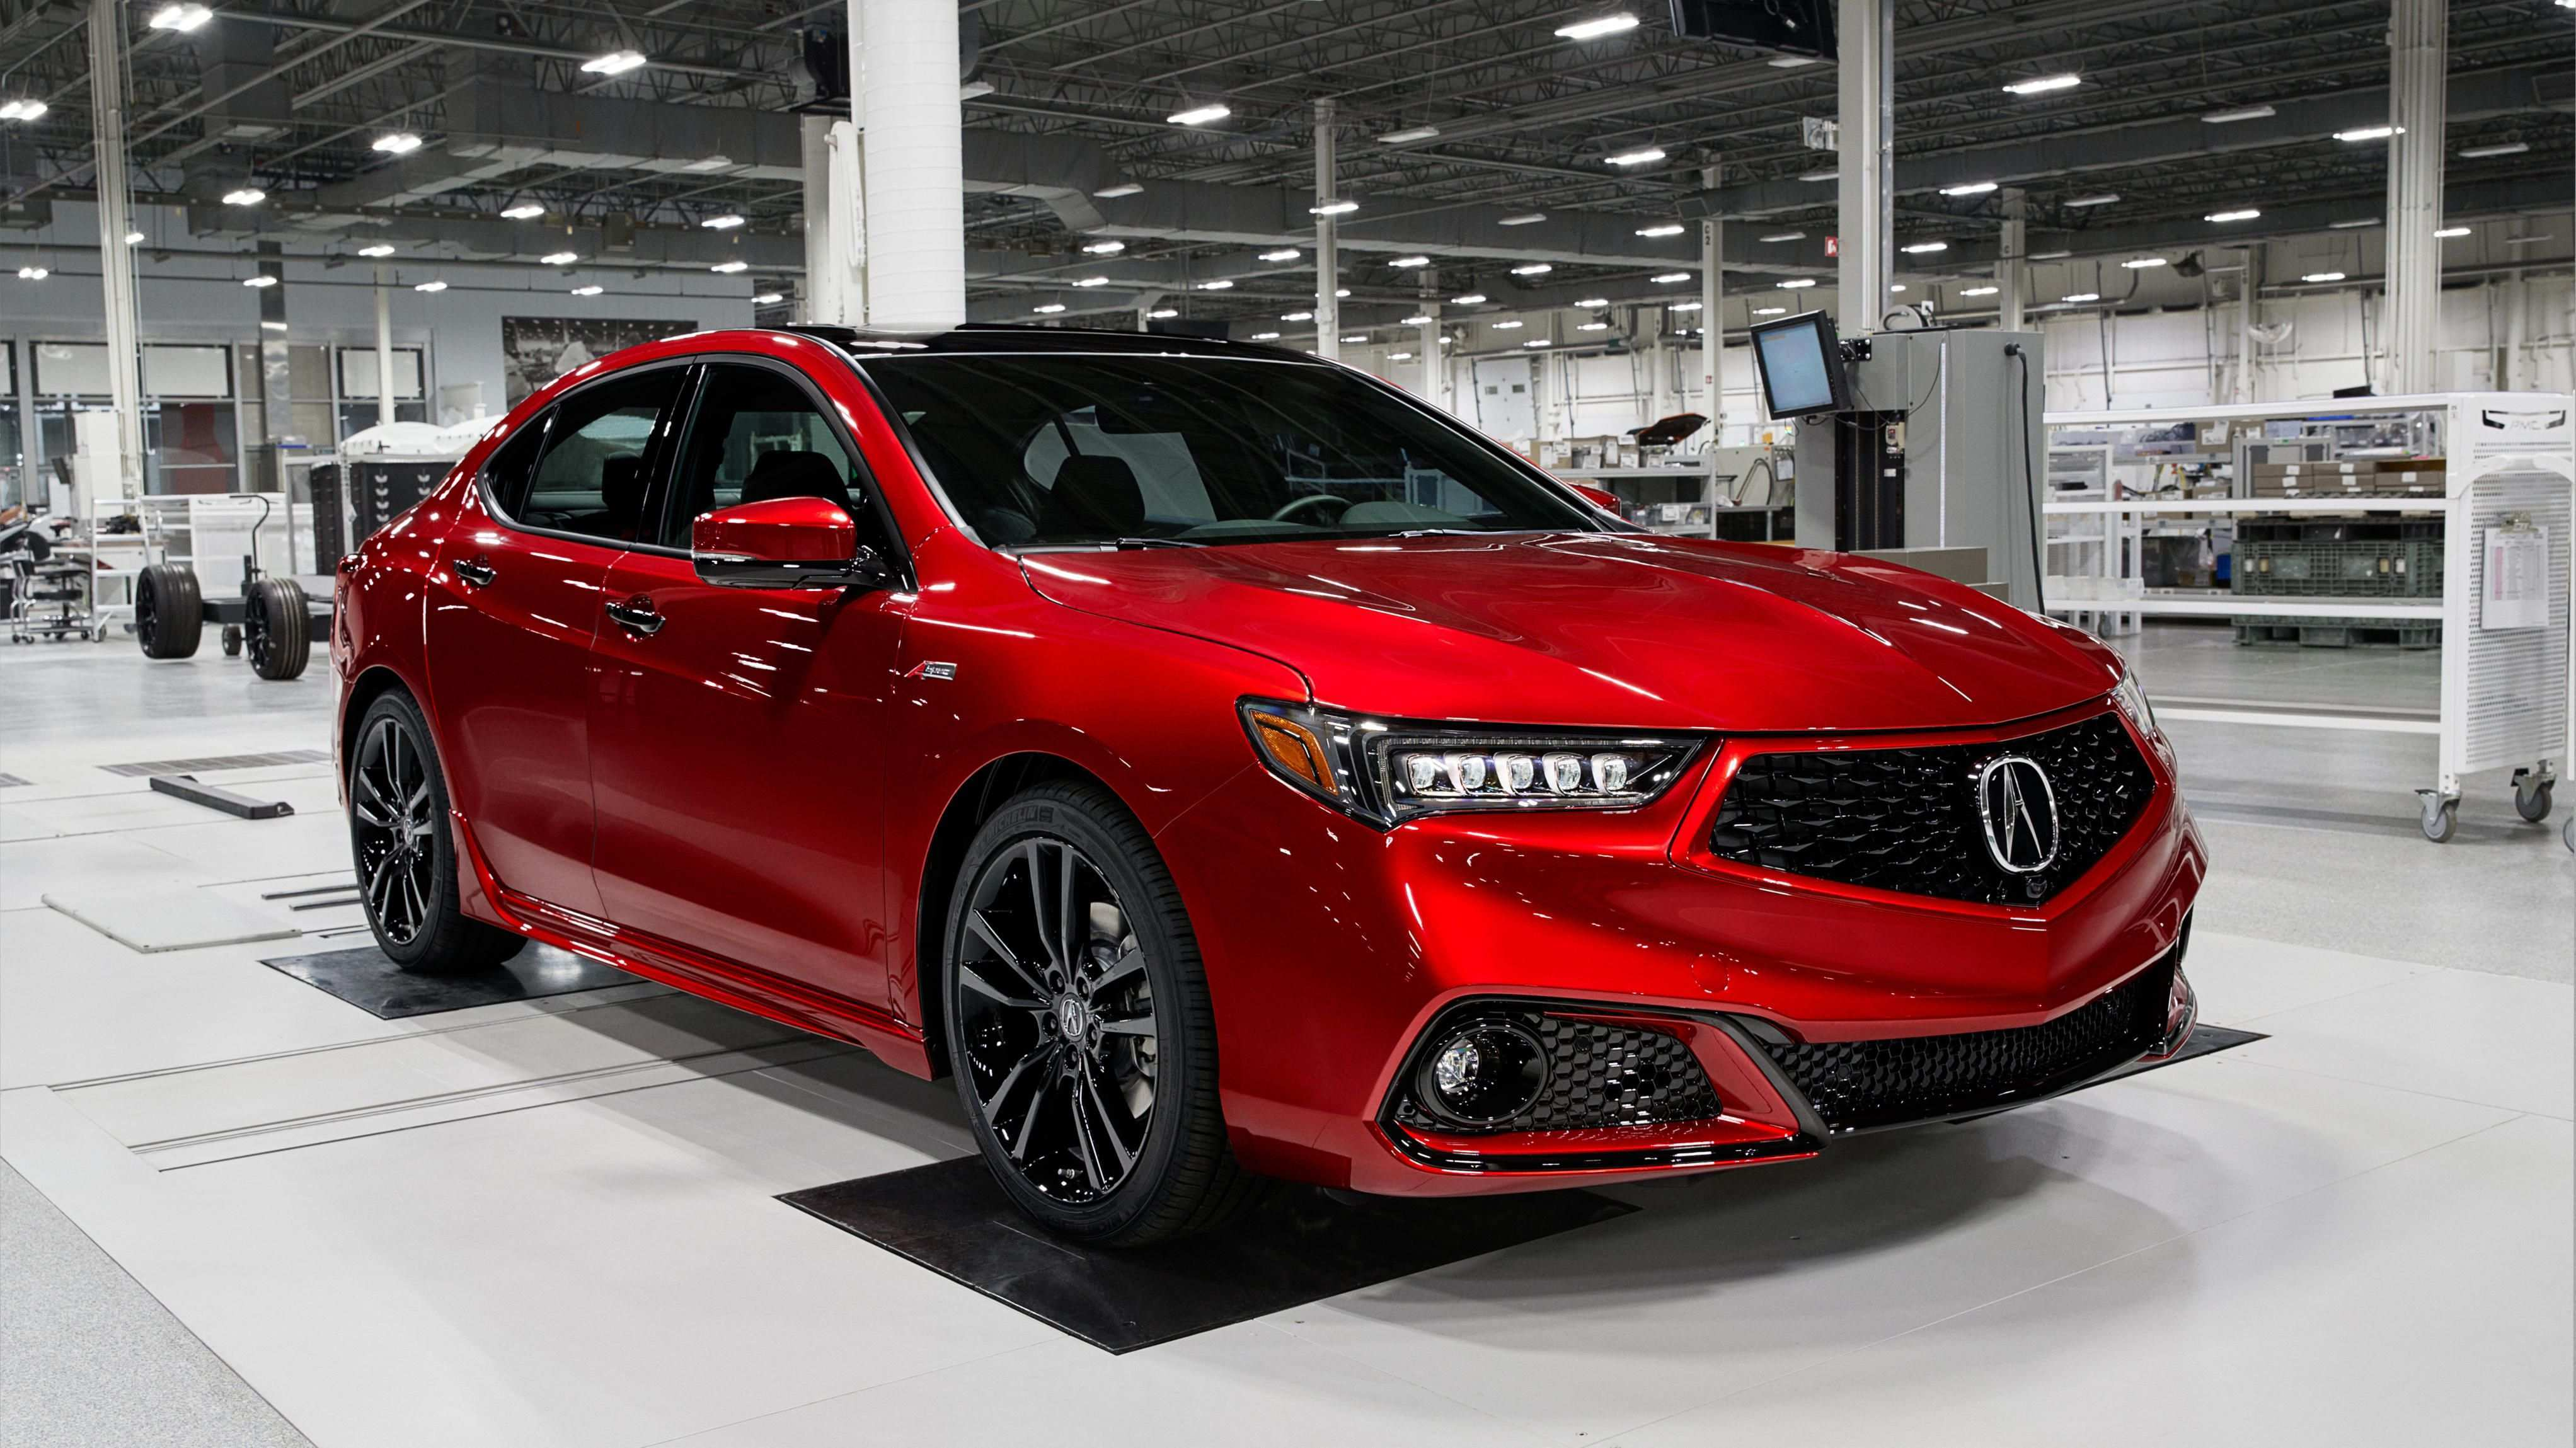 79 The Acura Tlx 2020 Price Rumors for Acura Tlx 2020 Price